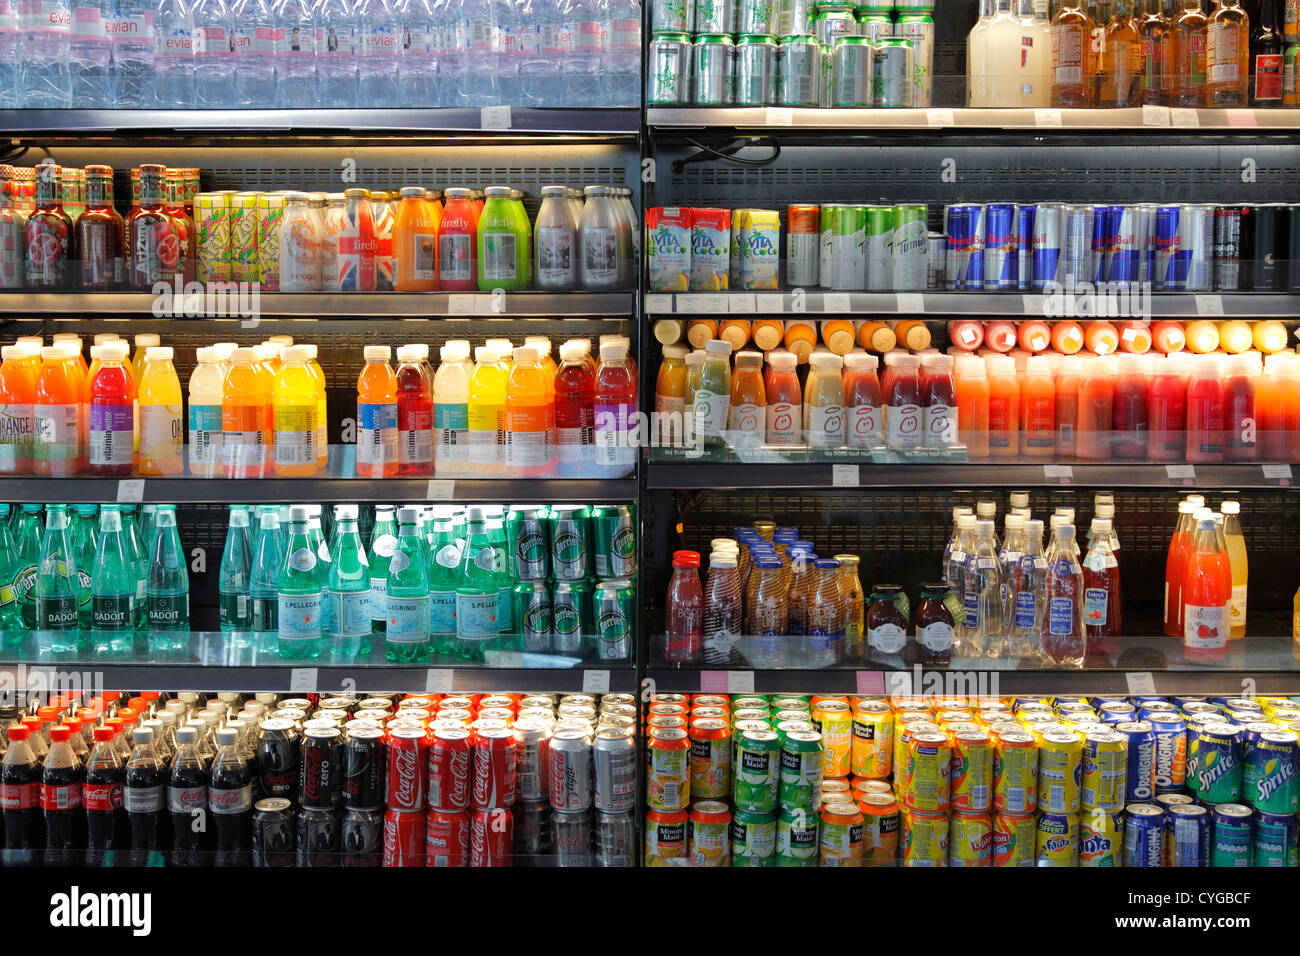 mineral water bottle uk stockfotos mineral water bottle uk bilder alamy. Black Bedroom Furniture Sets. Home Design Ideas